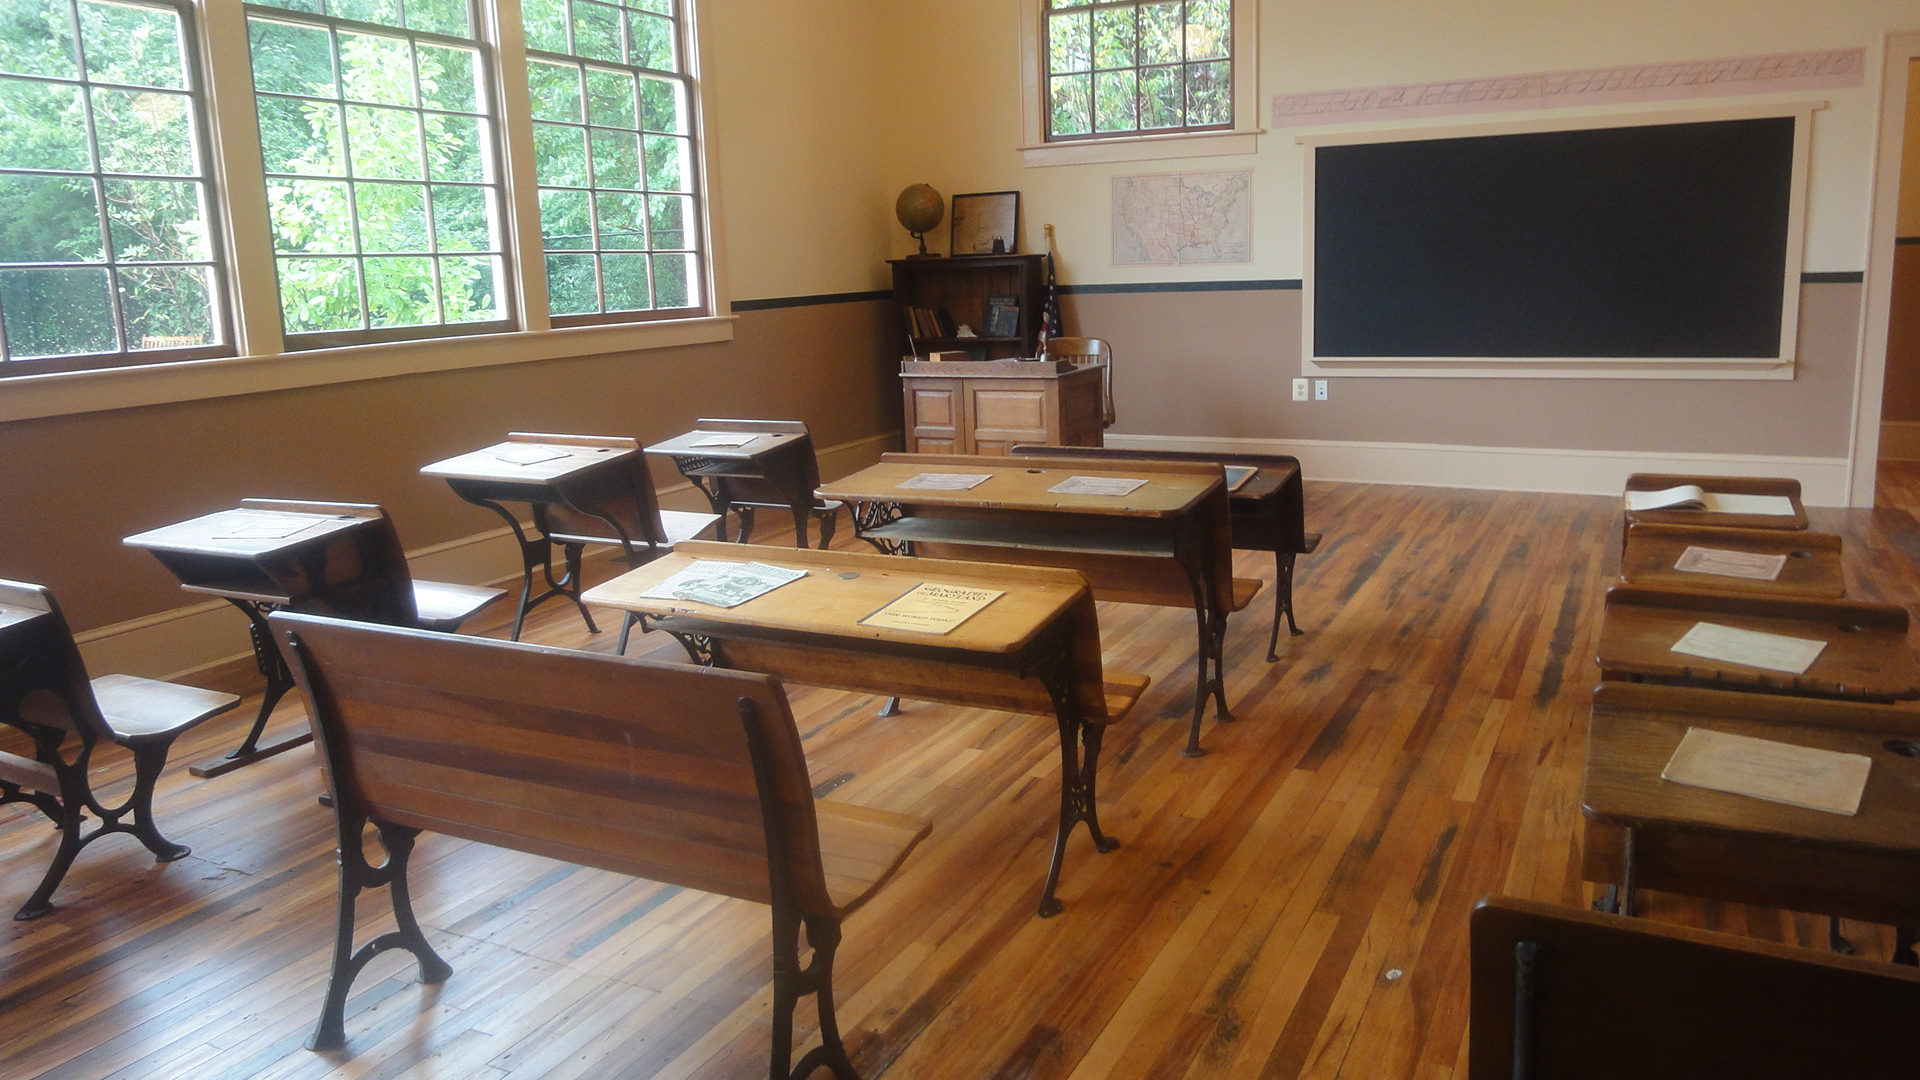 An interior image of the Ridgeley Rosenwald School after its restoration. It was built in 1927 to serve the Black community in Capitol Heights. In 2011 it was restored and reopened as a museum. This site was selected for Endangered Maryland in 2007.